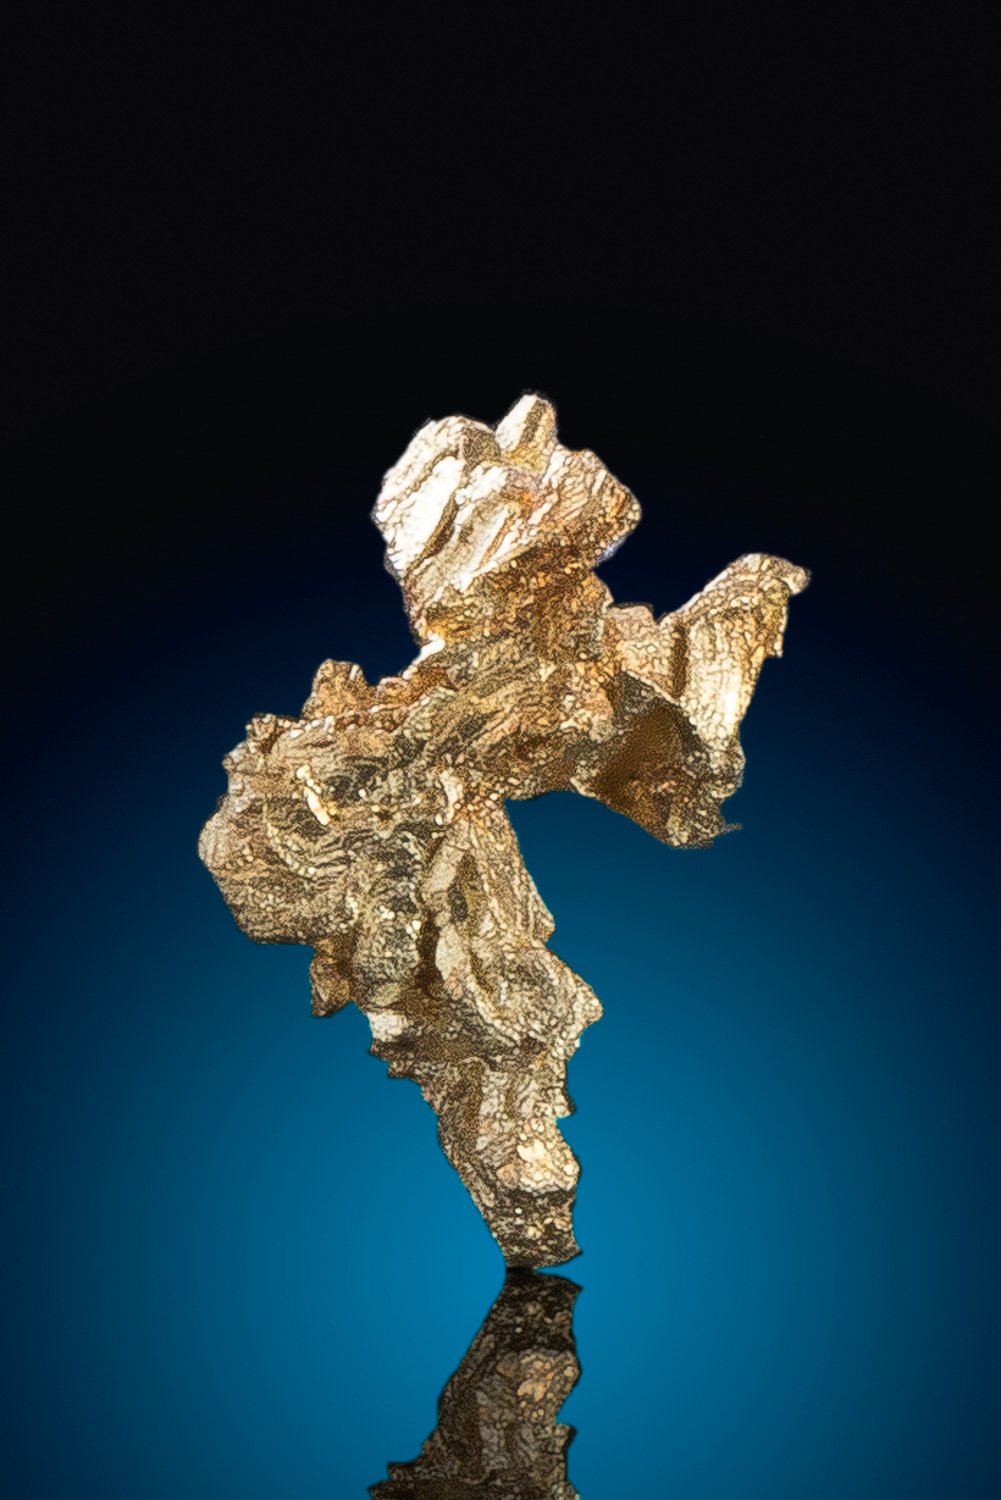 Rounded and Tapered Gold Nugget Crystal - Nevada